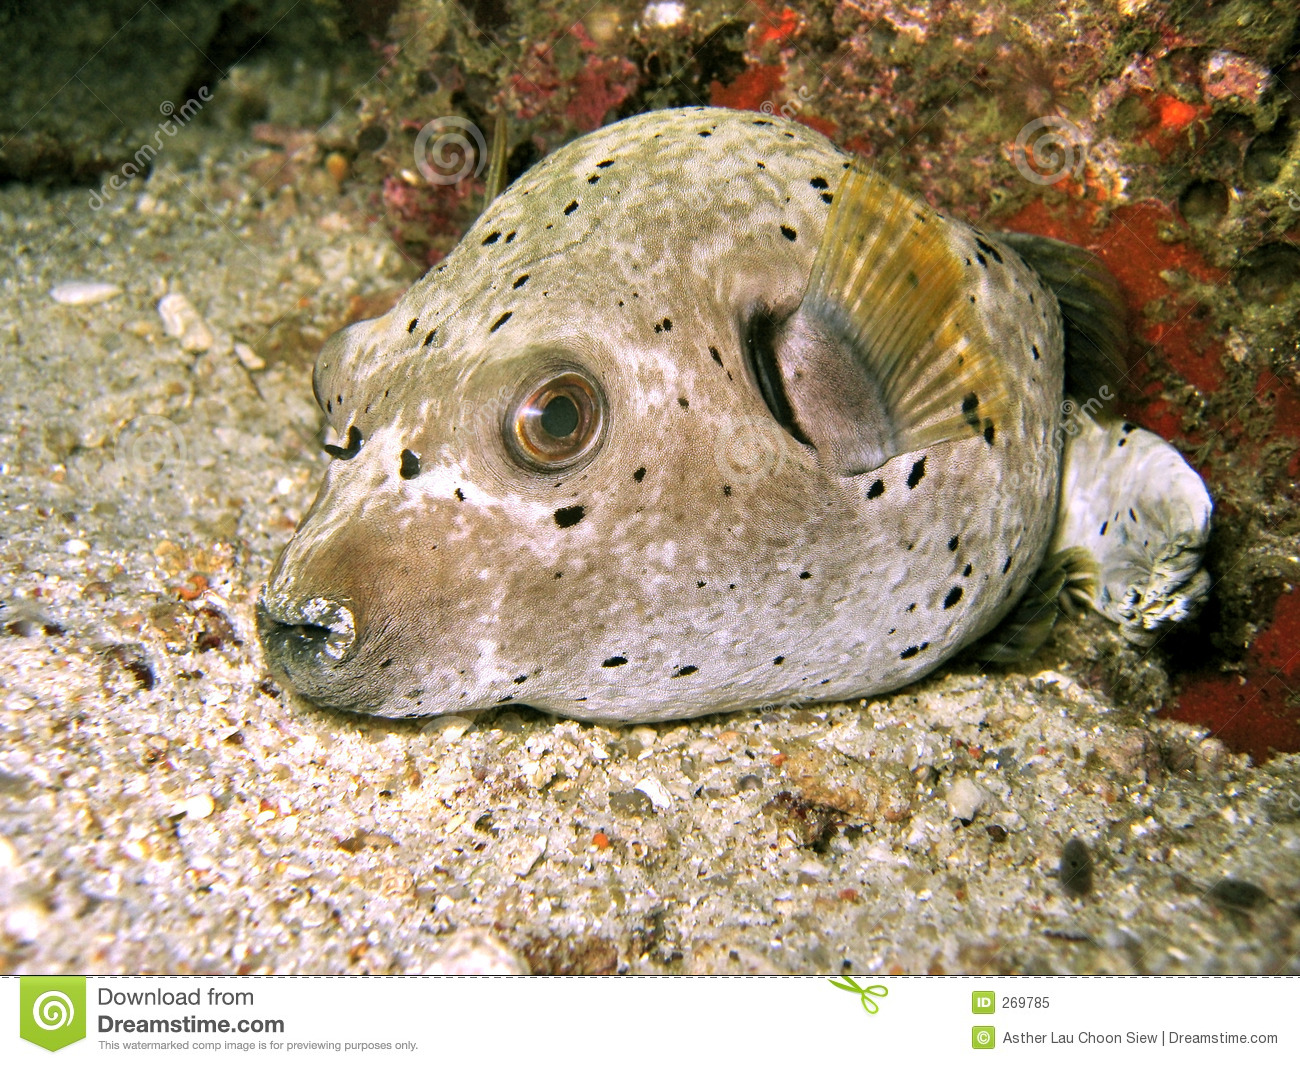 Dogface pufferfish royalty free stock photo image 269785 for Dog face puffer fish